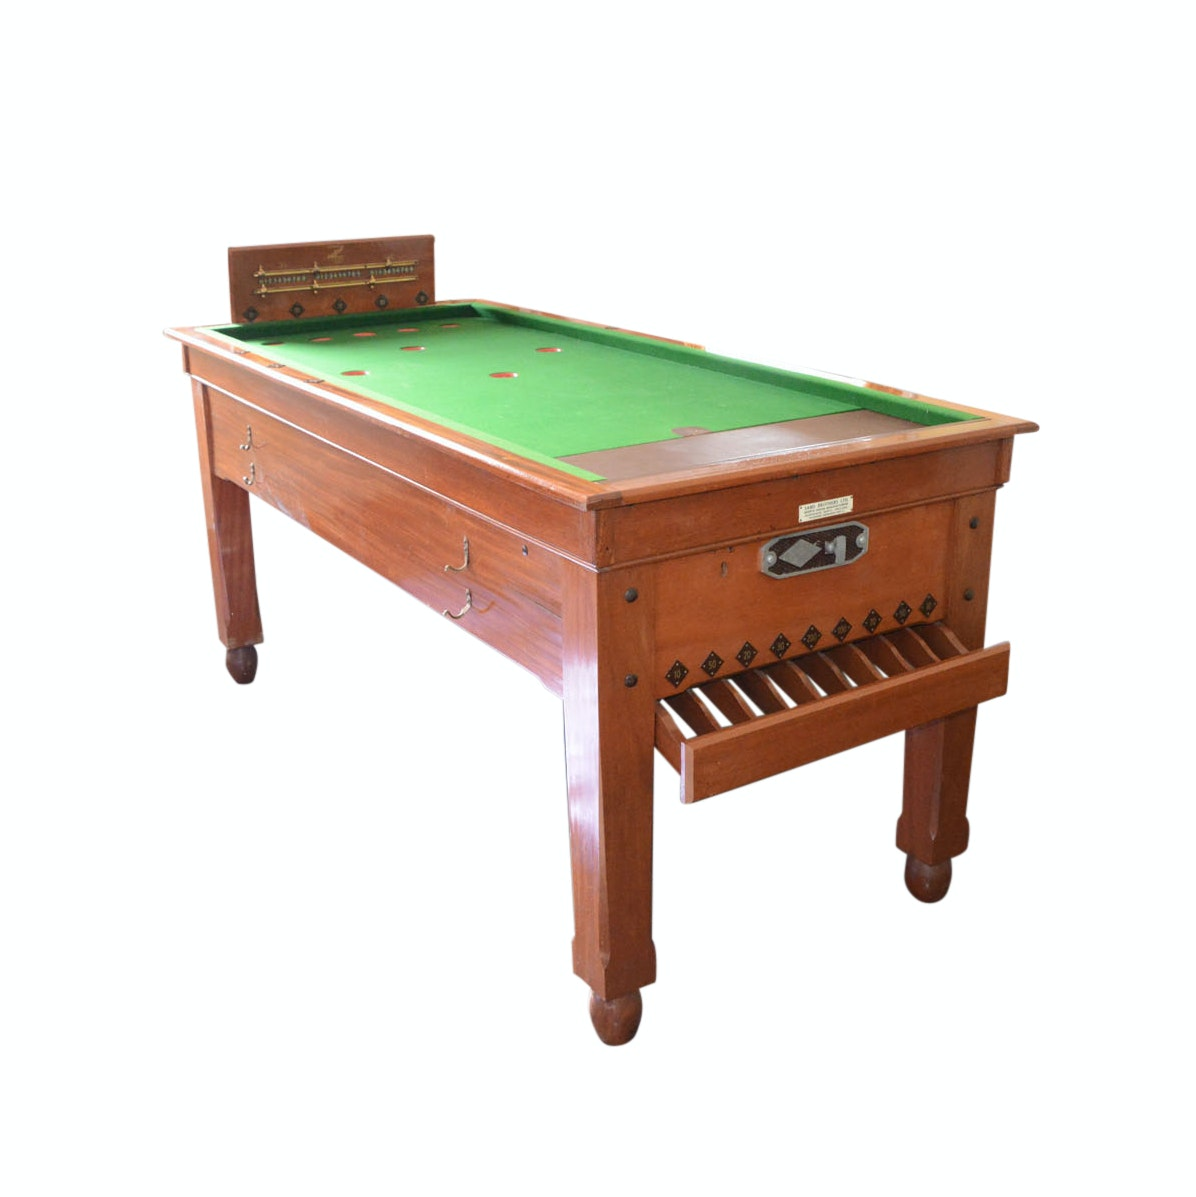 """Vintage English """"Skittles"""" Game Table by Sams Brothers"""